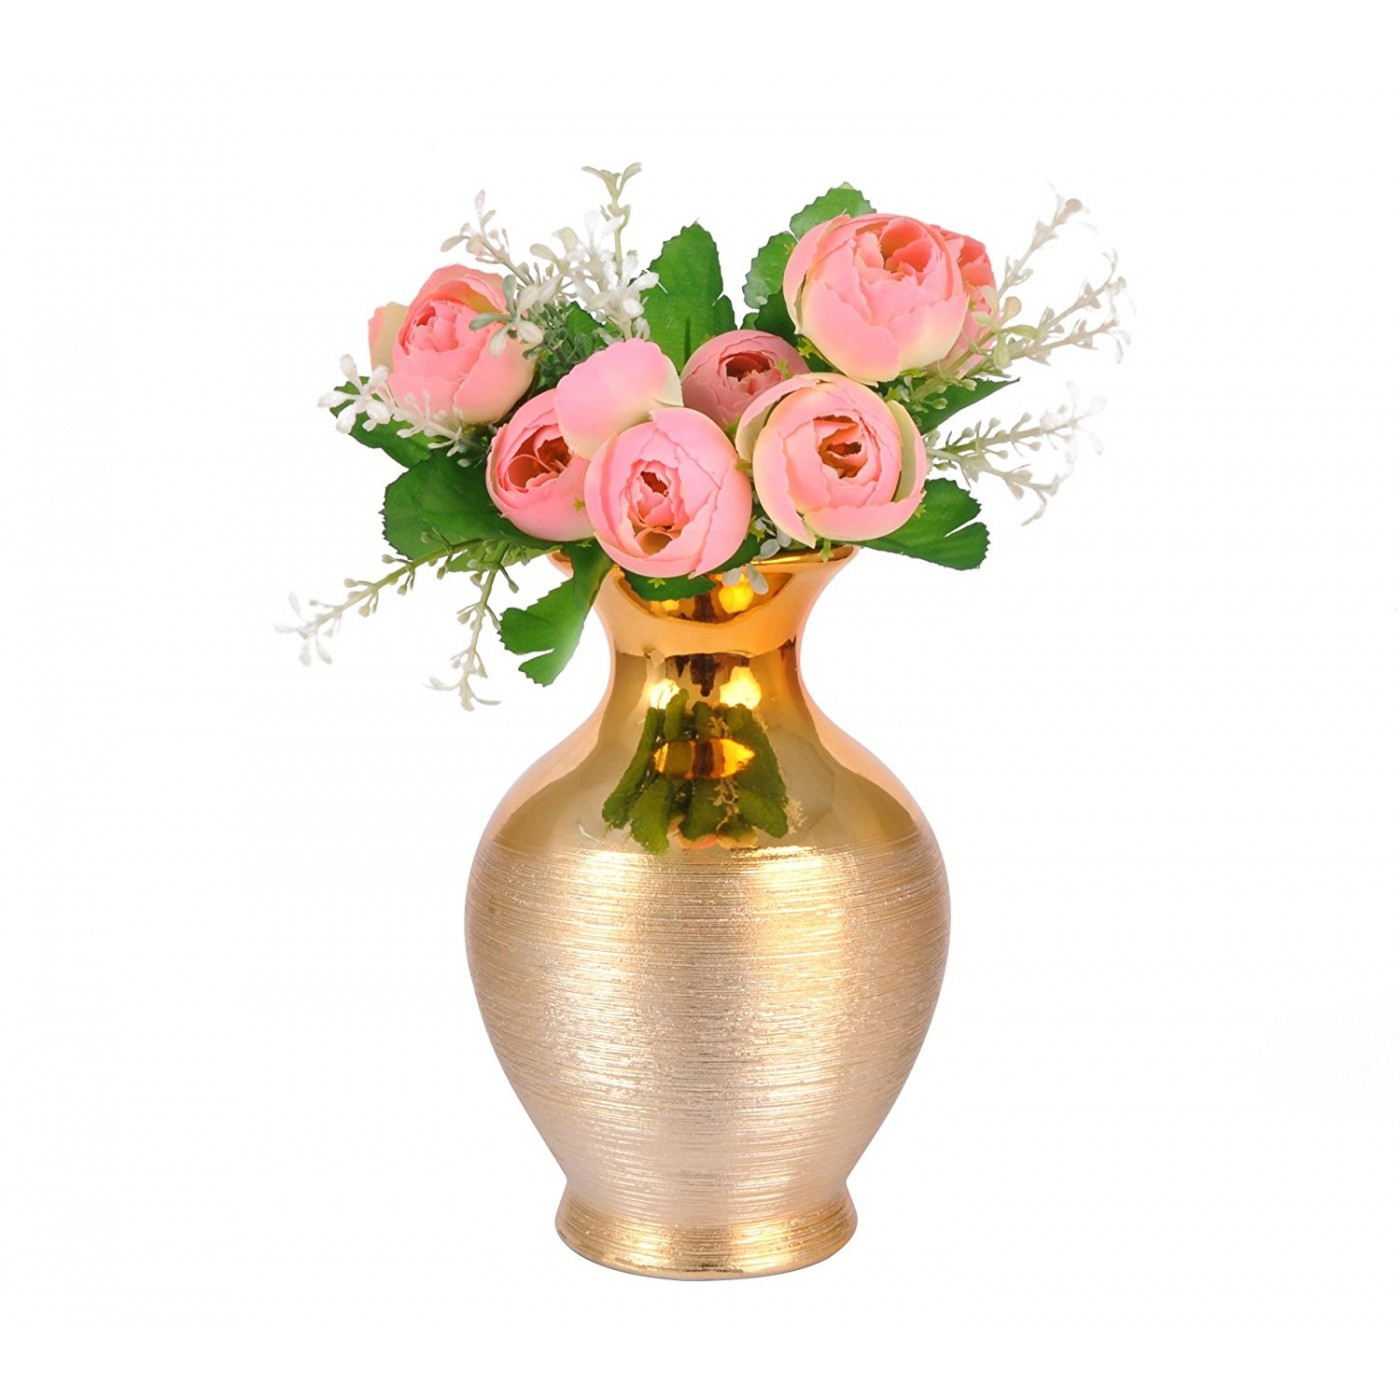 plastic pedestal vase of gold vase fake flowers flowers healthy with artificial flower with vase for living room